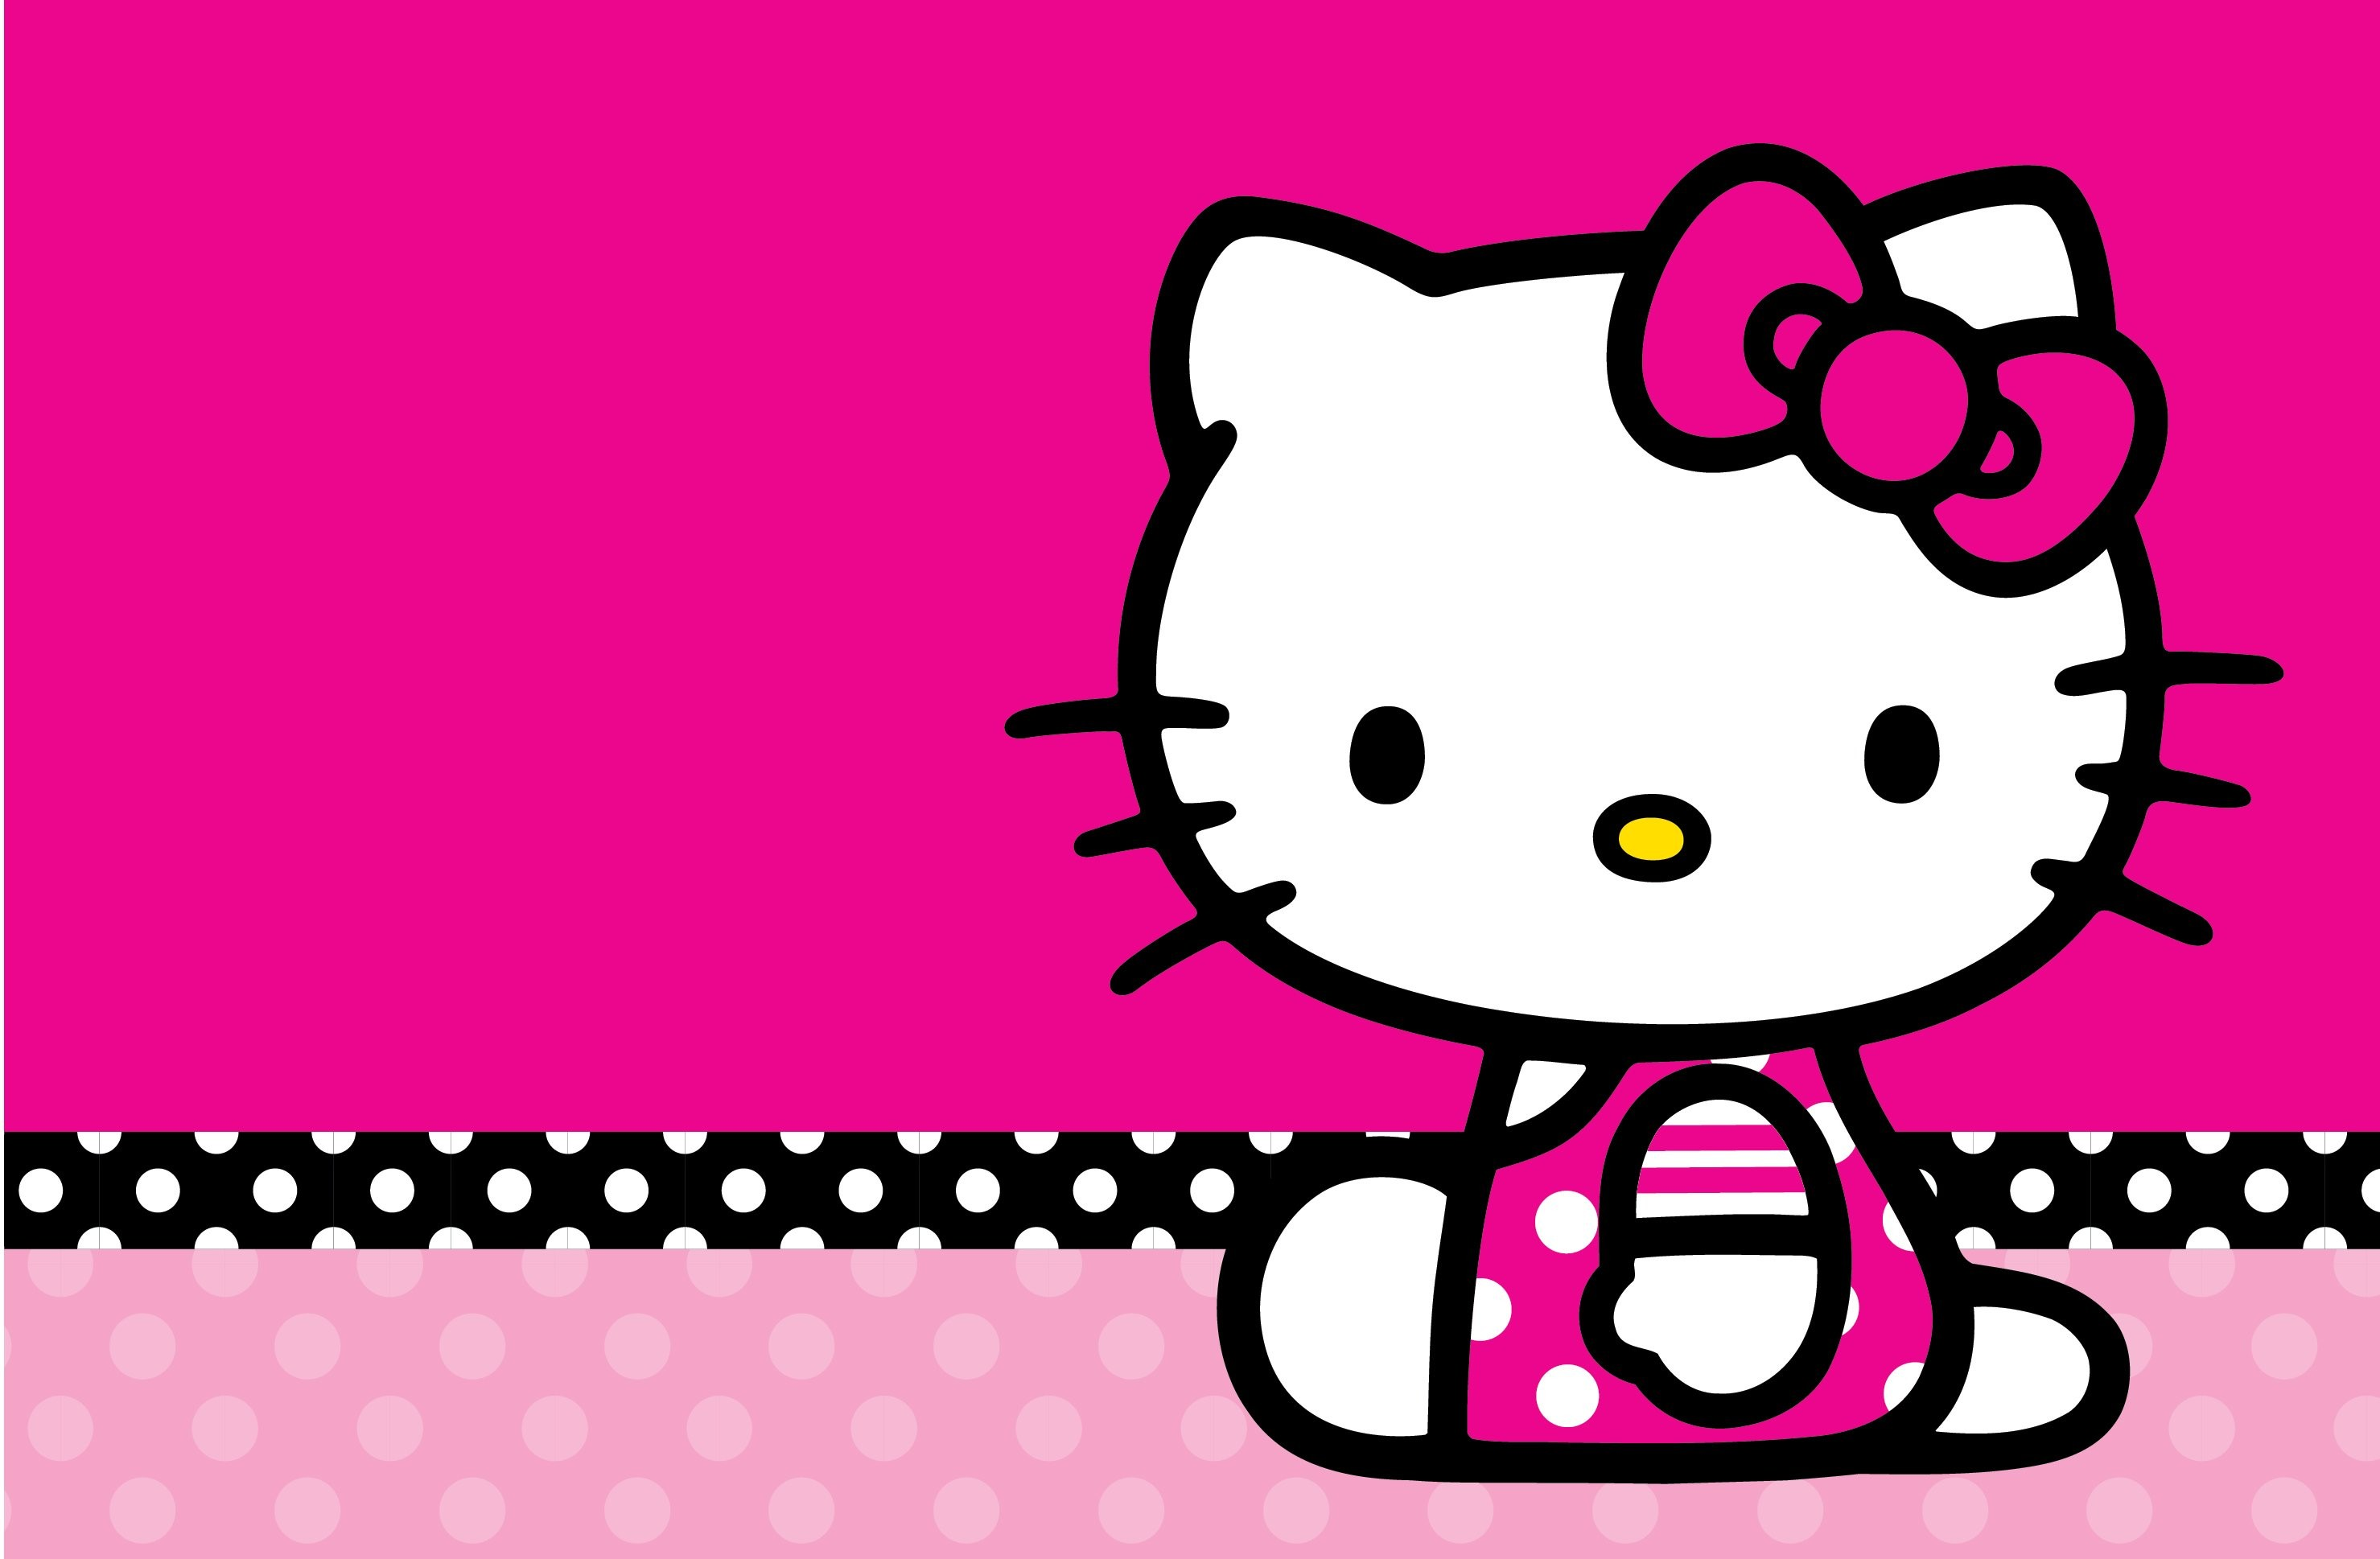 Amazing Wallpaper Hello Kitty Ipad - 984744-download-free-hello-kitty-desktop-background-wallpapers-2958x1938-for-ipad  Pictures_829150.jpg